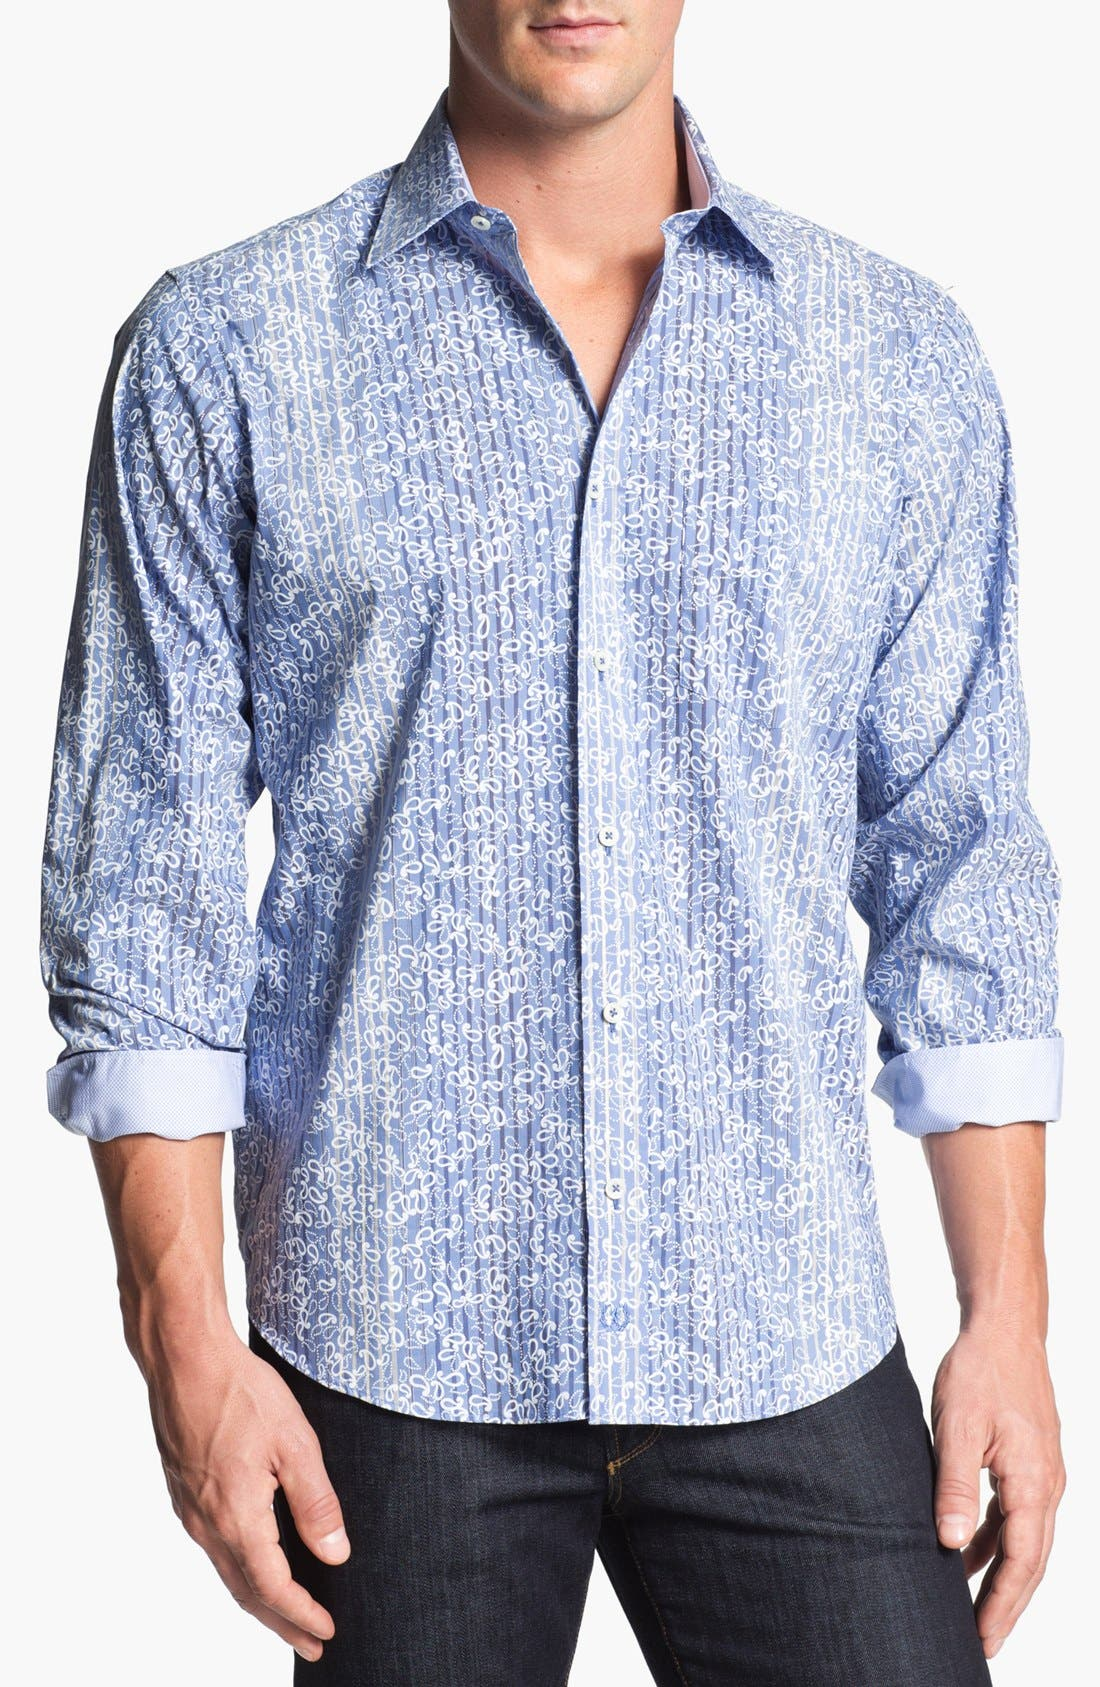 Alternate Image 1 Selected - Bugatchi Striped Paisley Classic Fit Cotton Sport Shirt